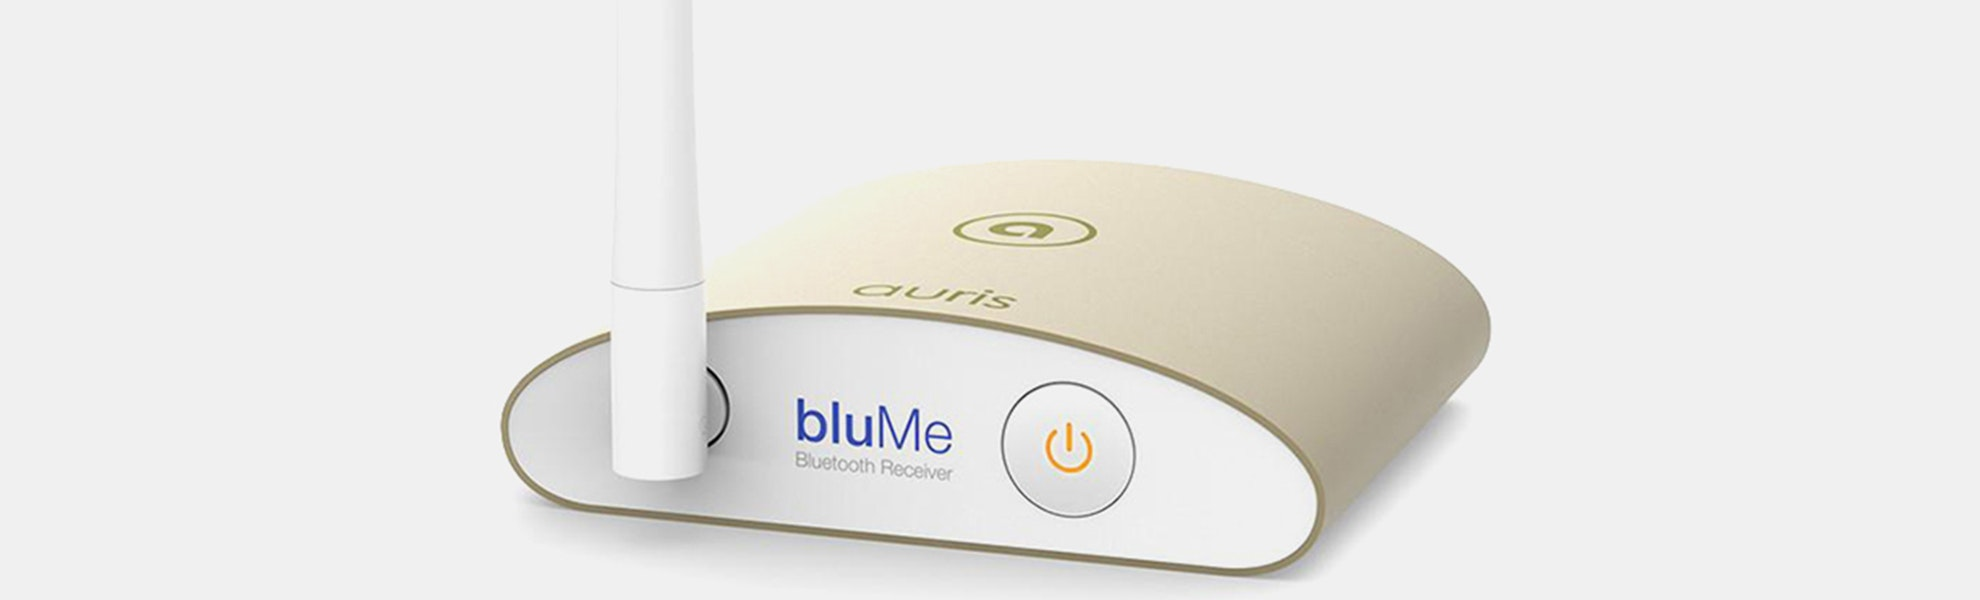 Auris bluMe Bluetooth Music Receiver